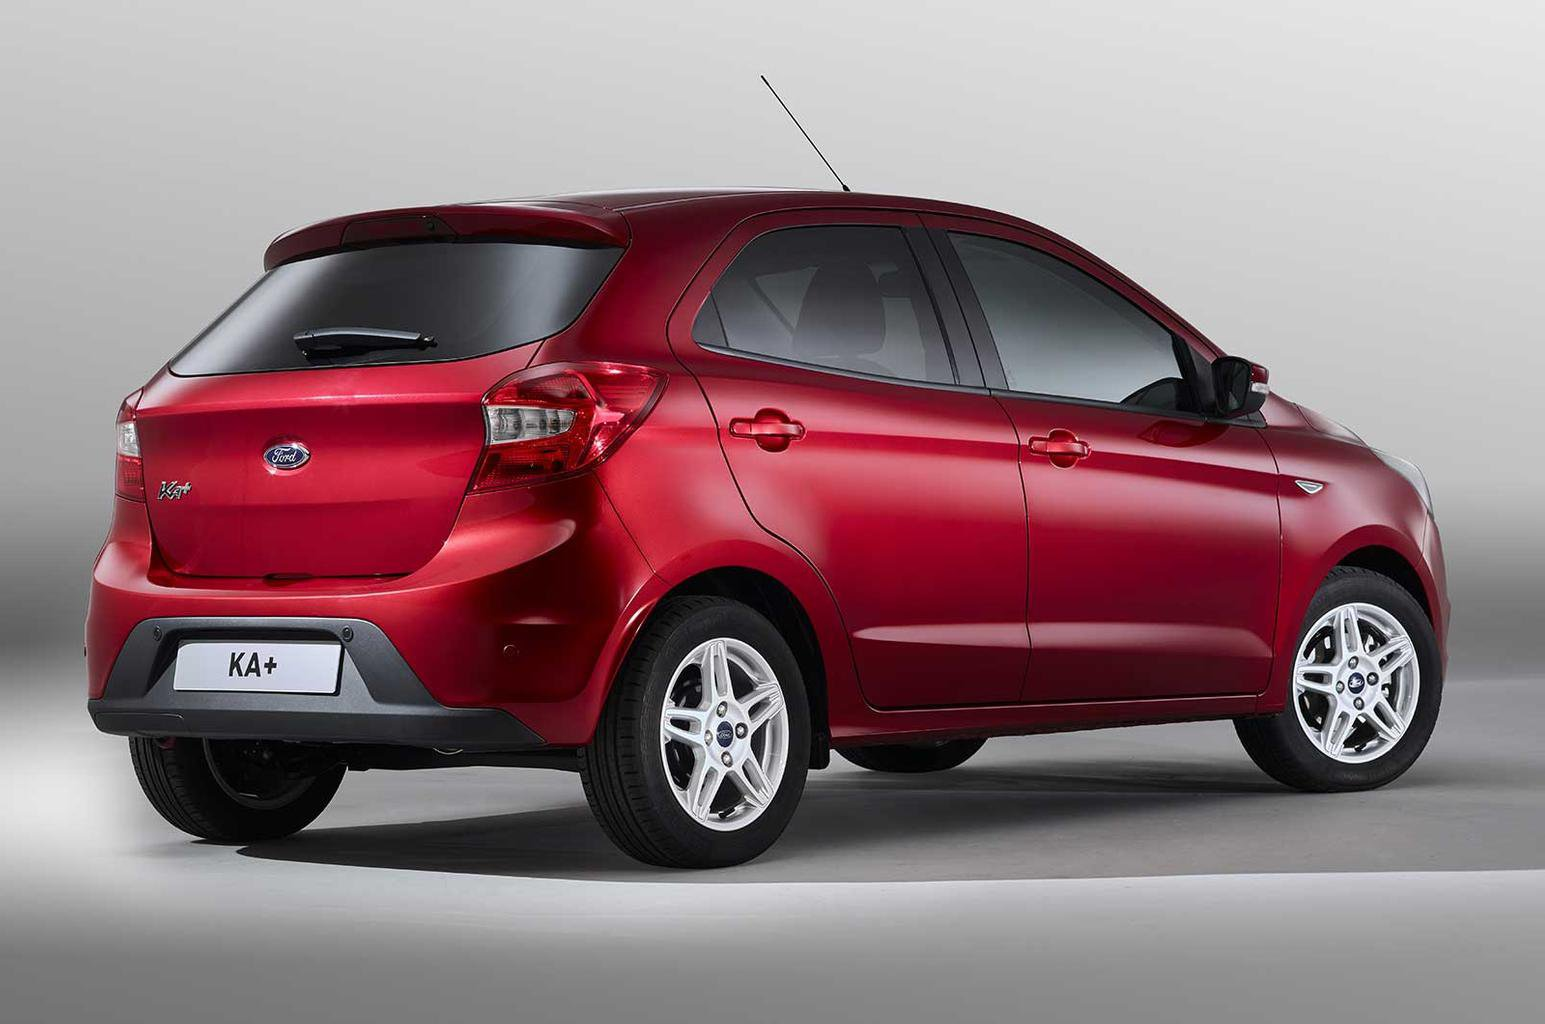 New Ford KA+ to rival Vauxhall Viva and Dacia Sandero